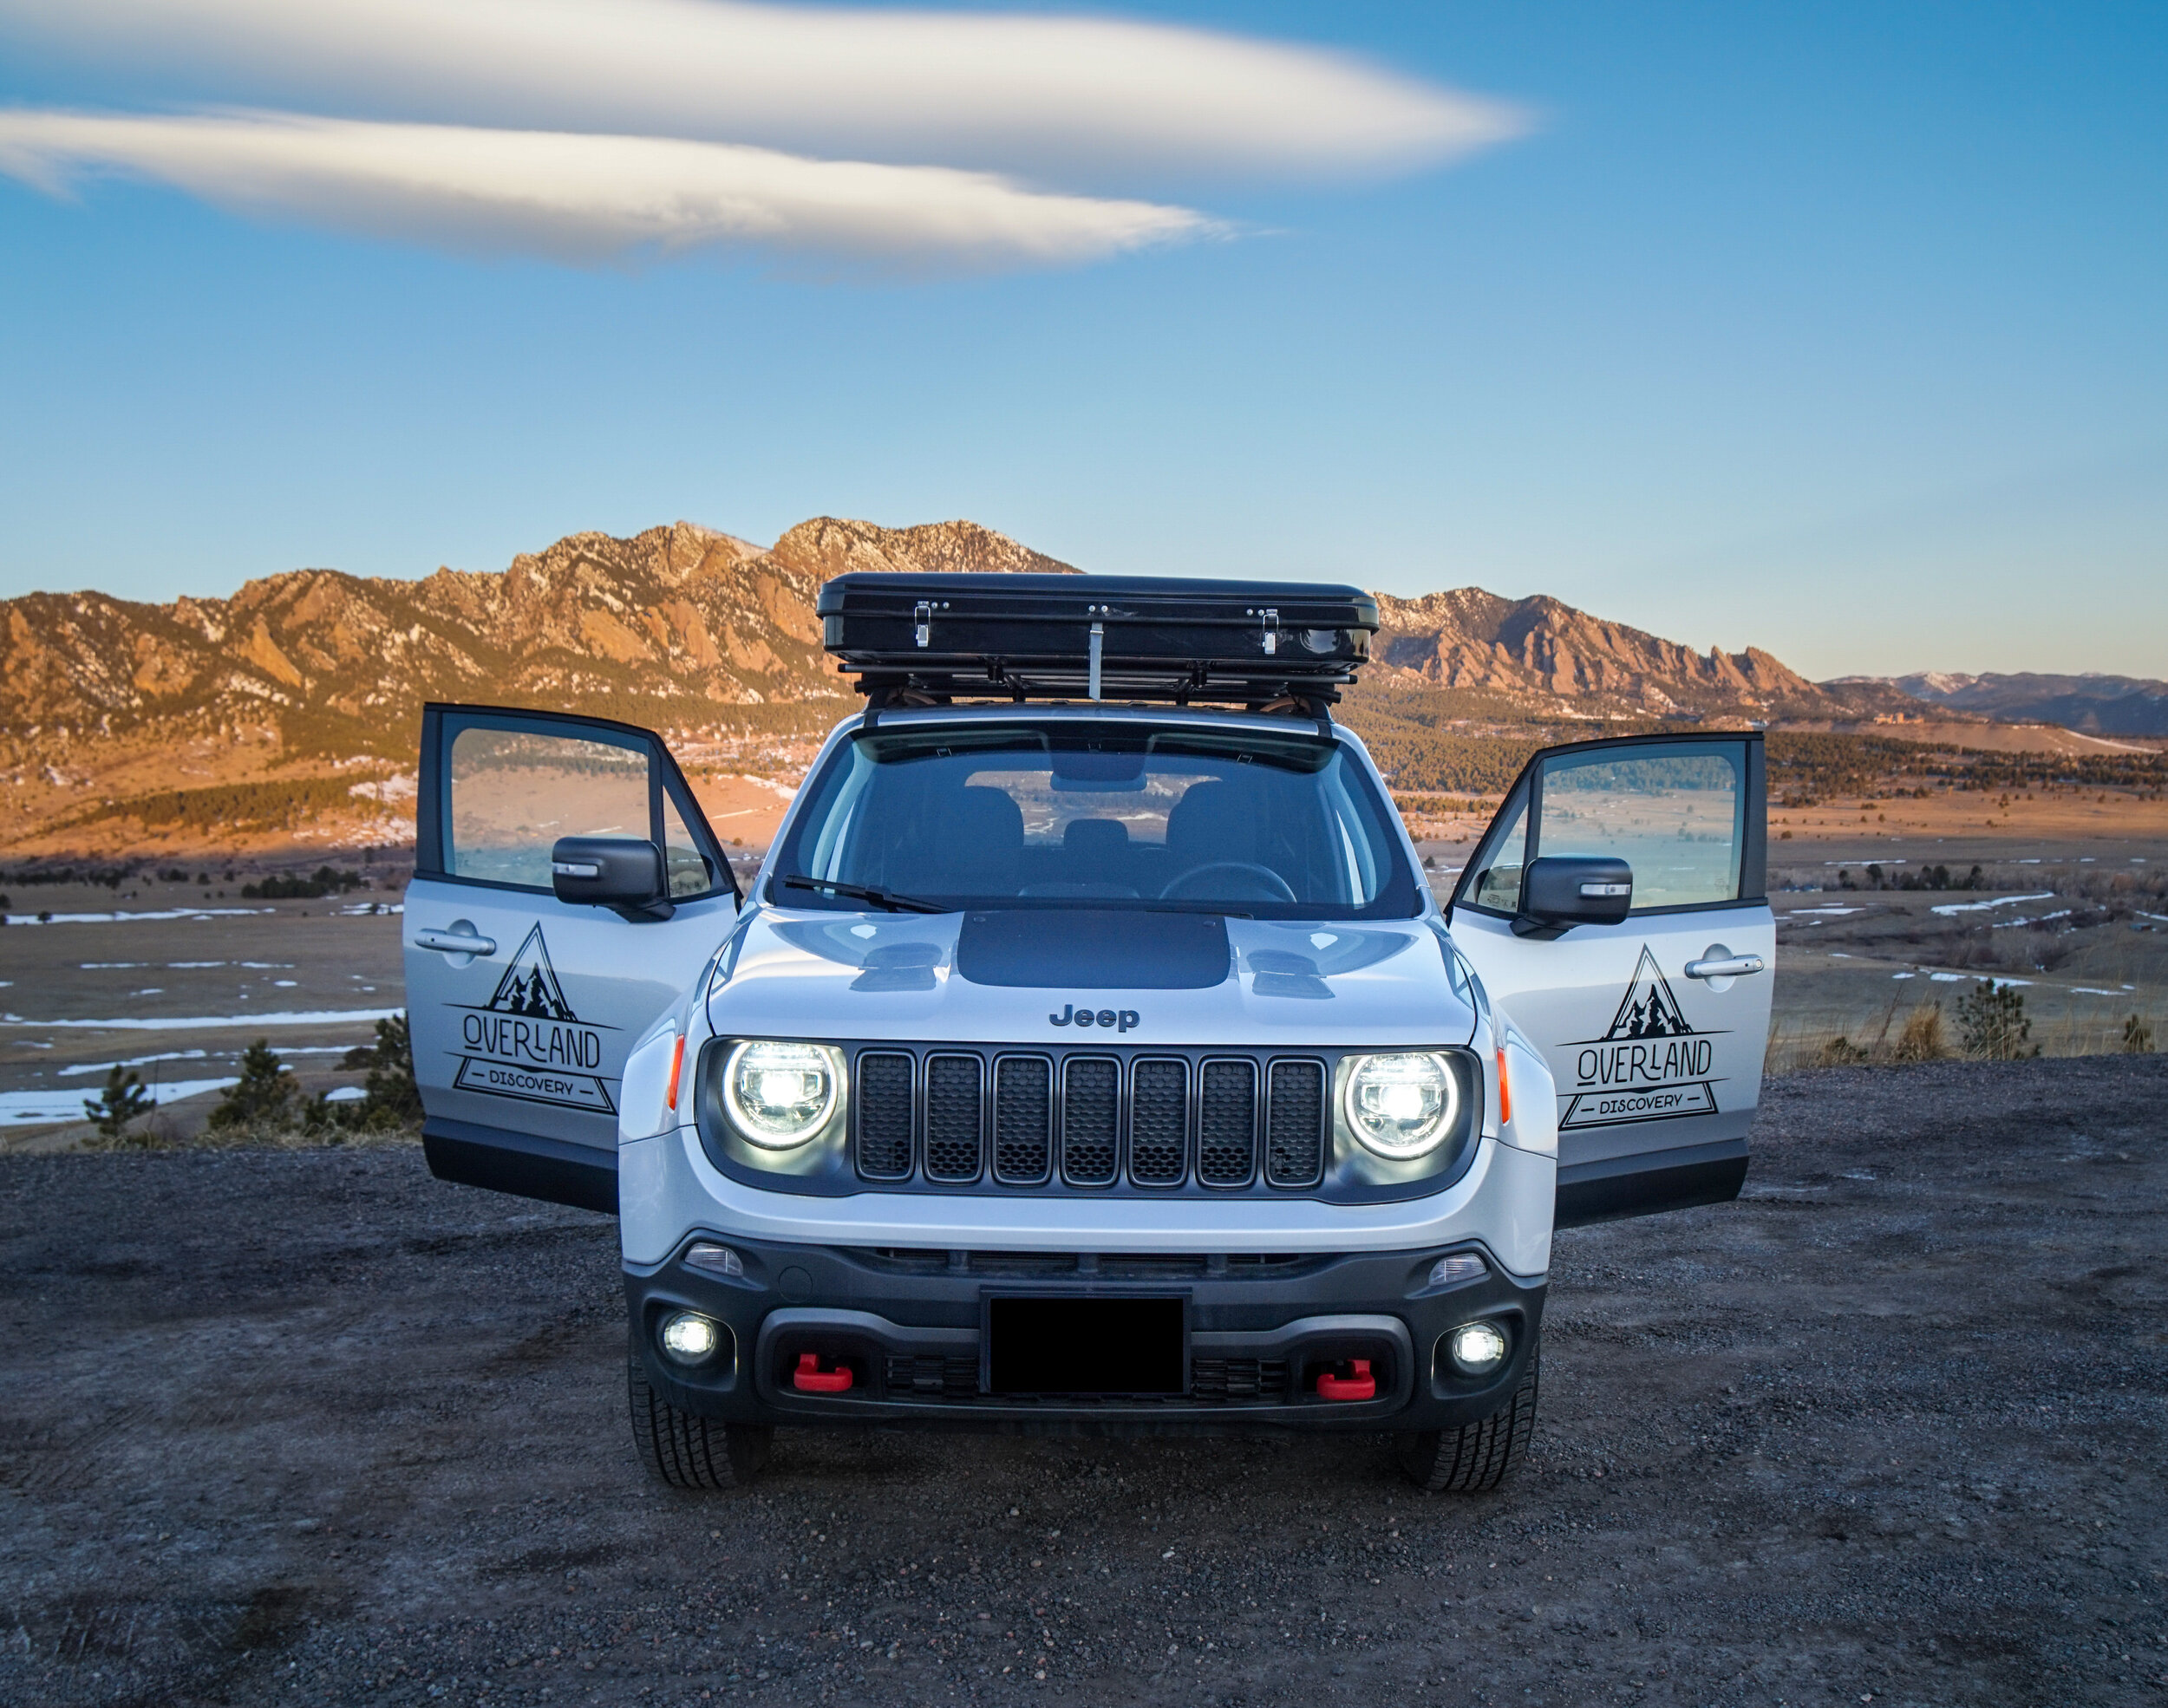 Jeep Renegade Camper With Roof Top Tent Overland Discovery